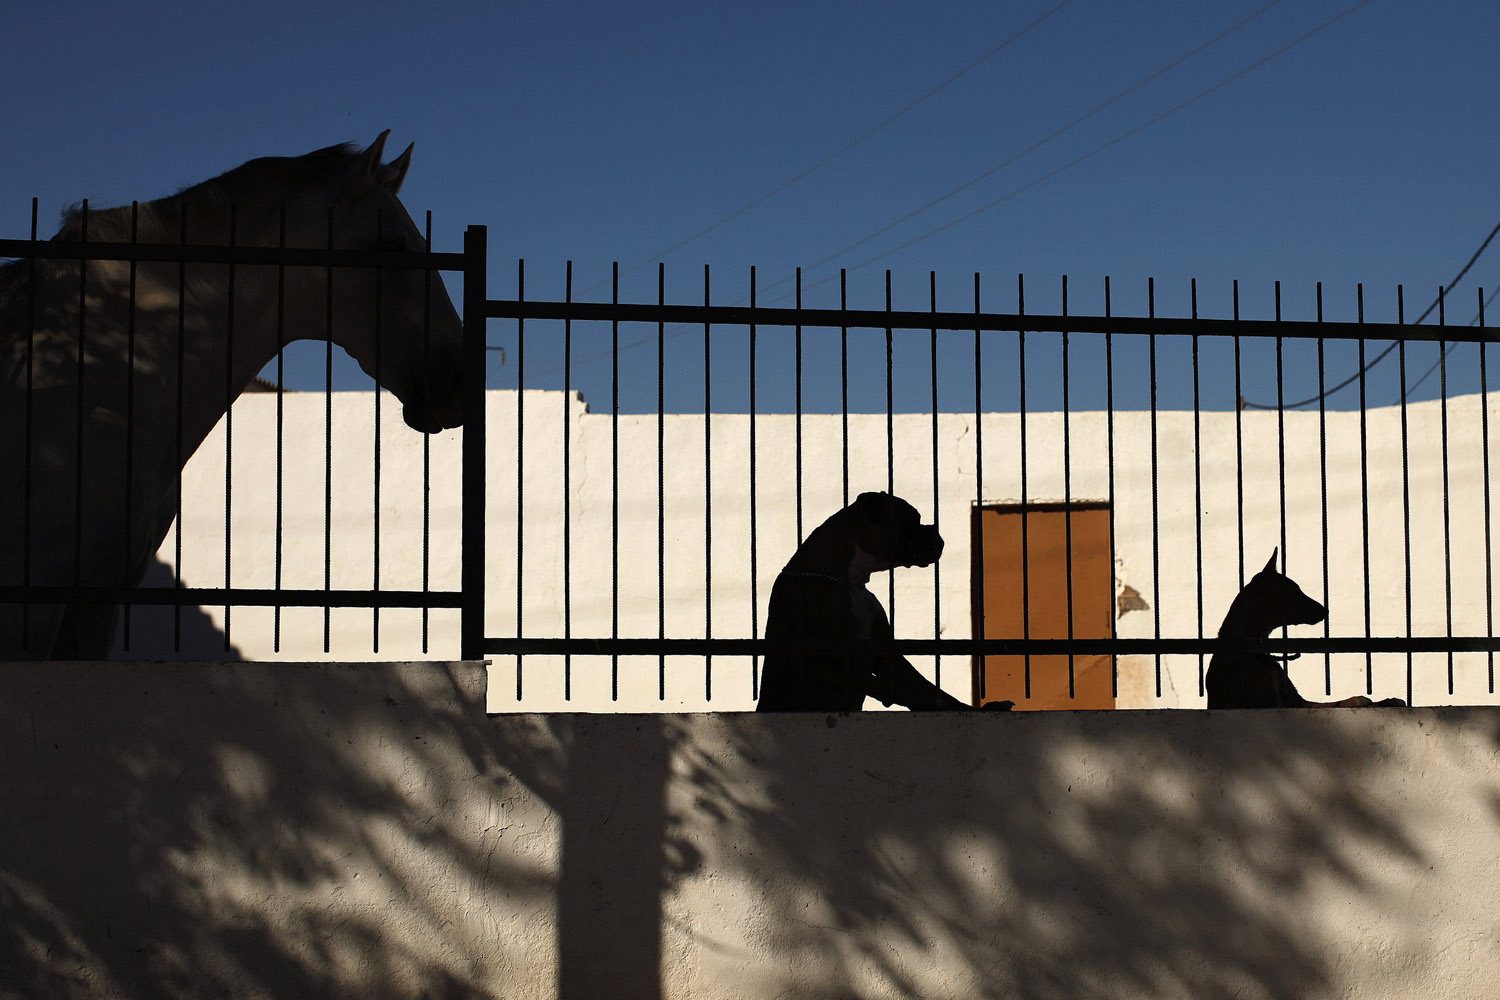 Aug. 15, 2012. A horse, a boxer dog and a podenco dog are silhouetted in Marinaleda, southern Spain.